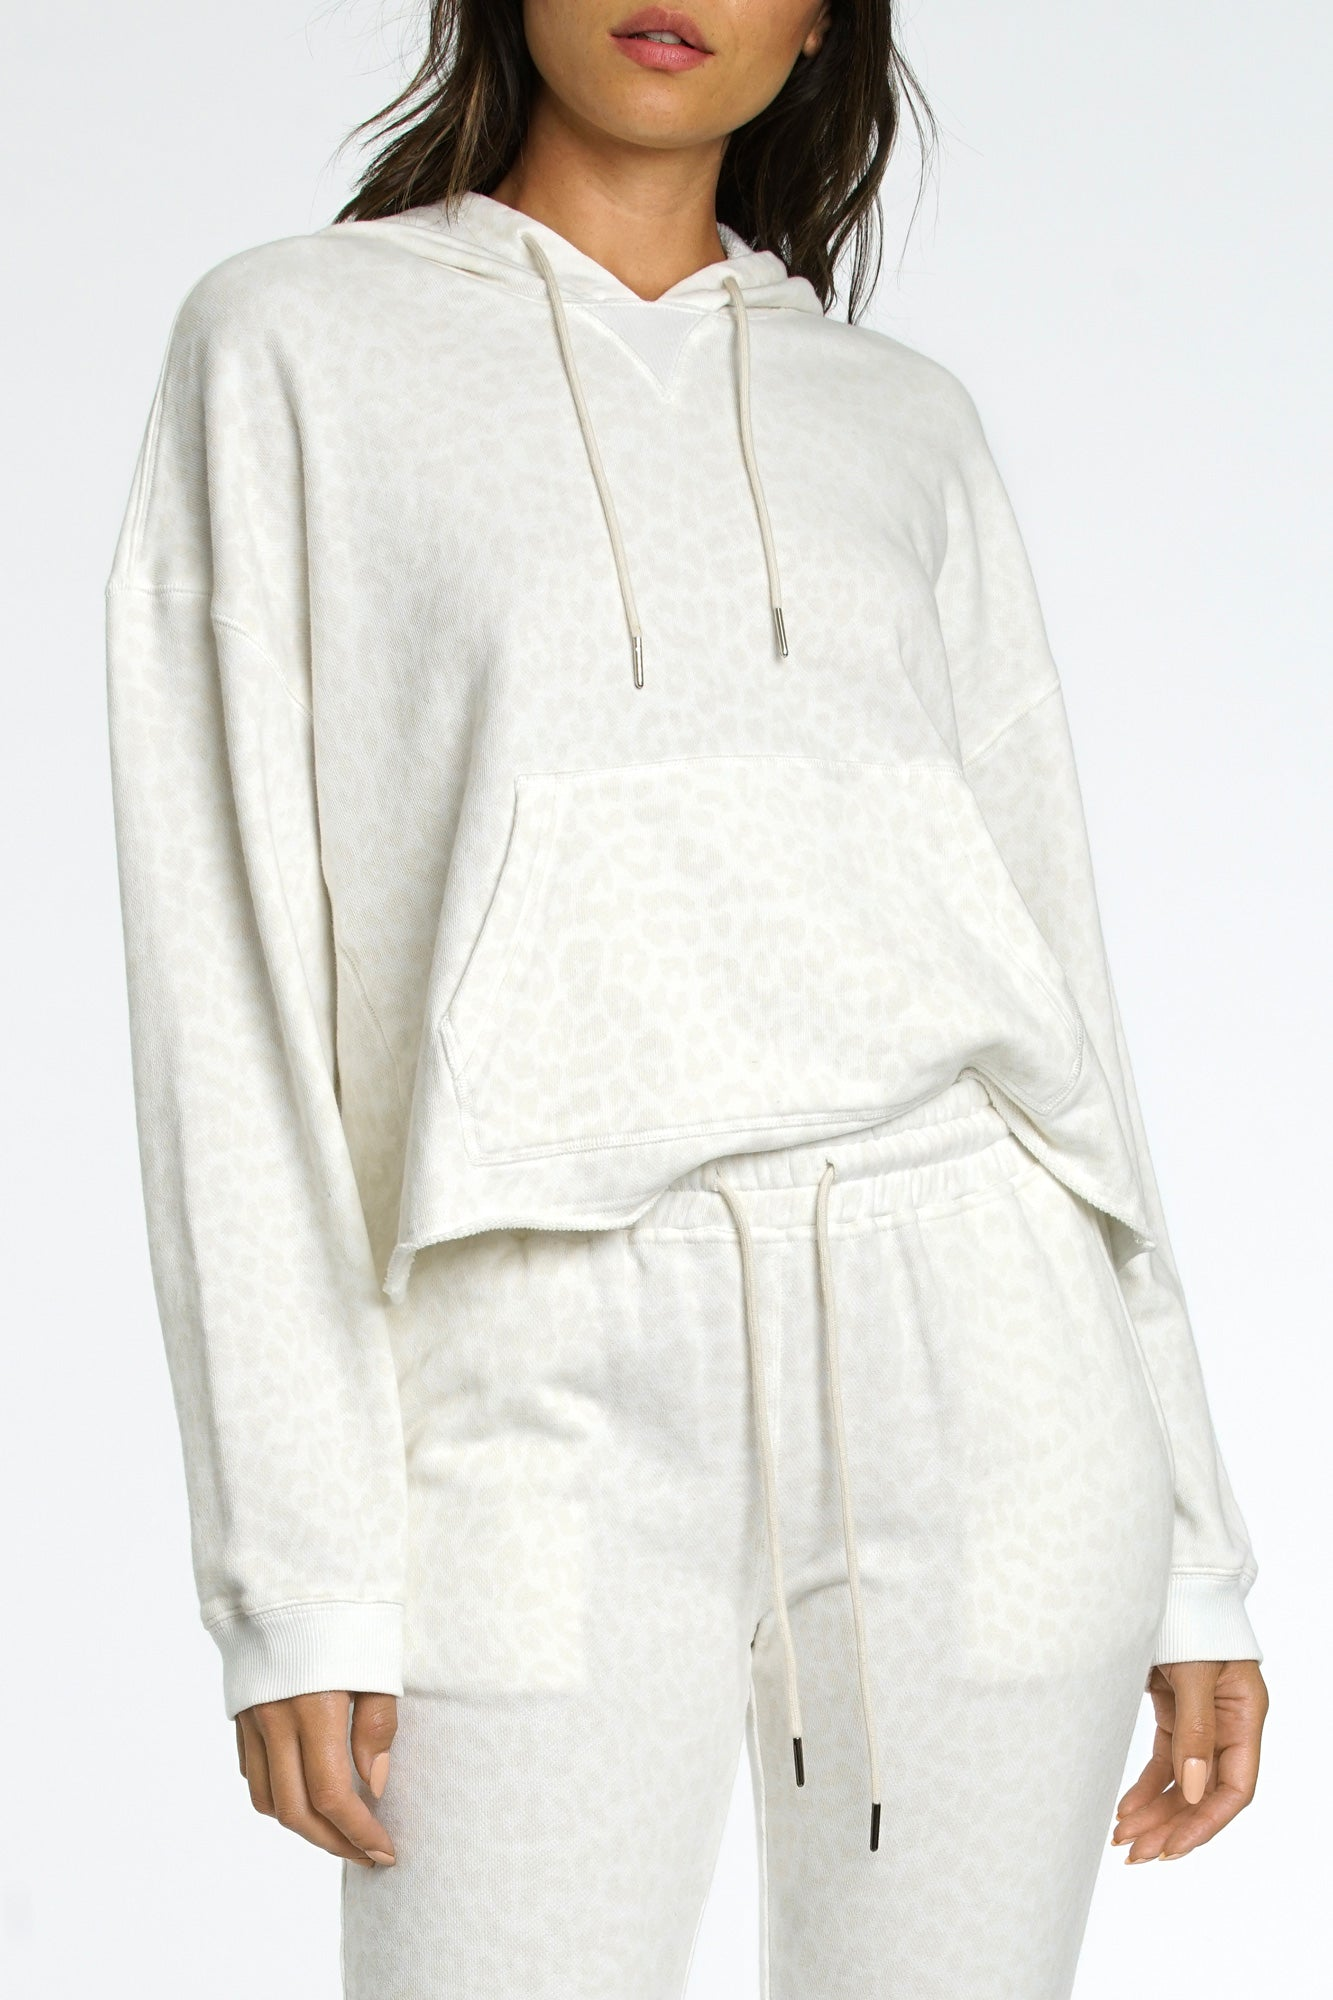 Maxime Hooded Sweatshirt - Wild Cat